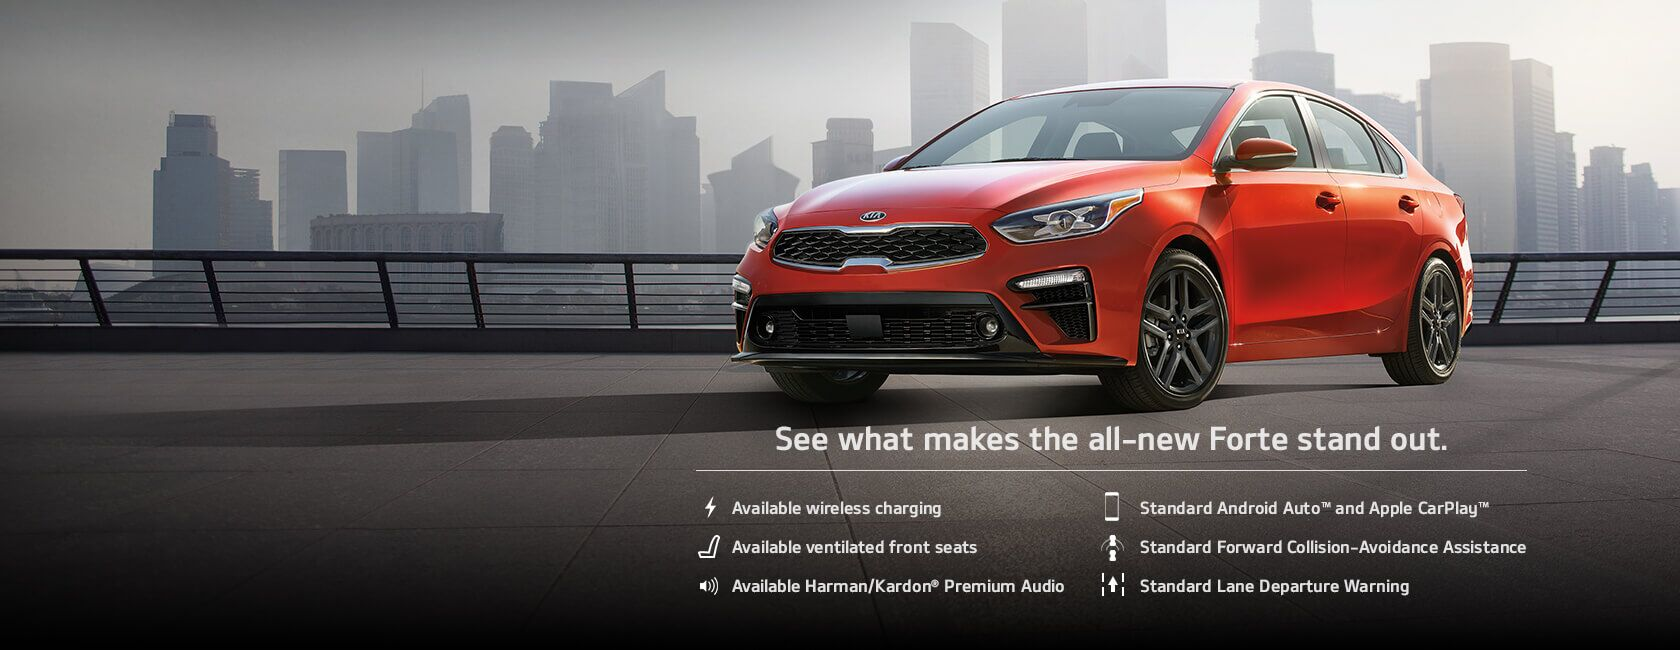 2019 Kia Forte in Fort Worth, TX